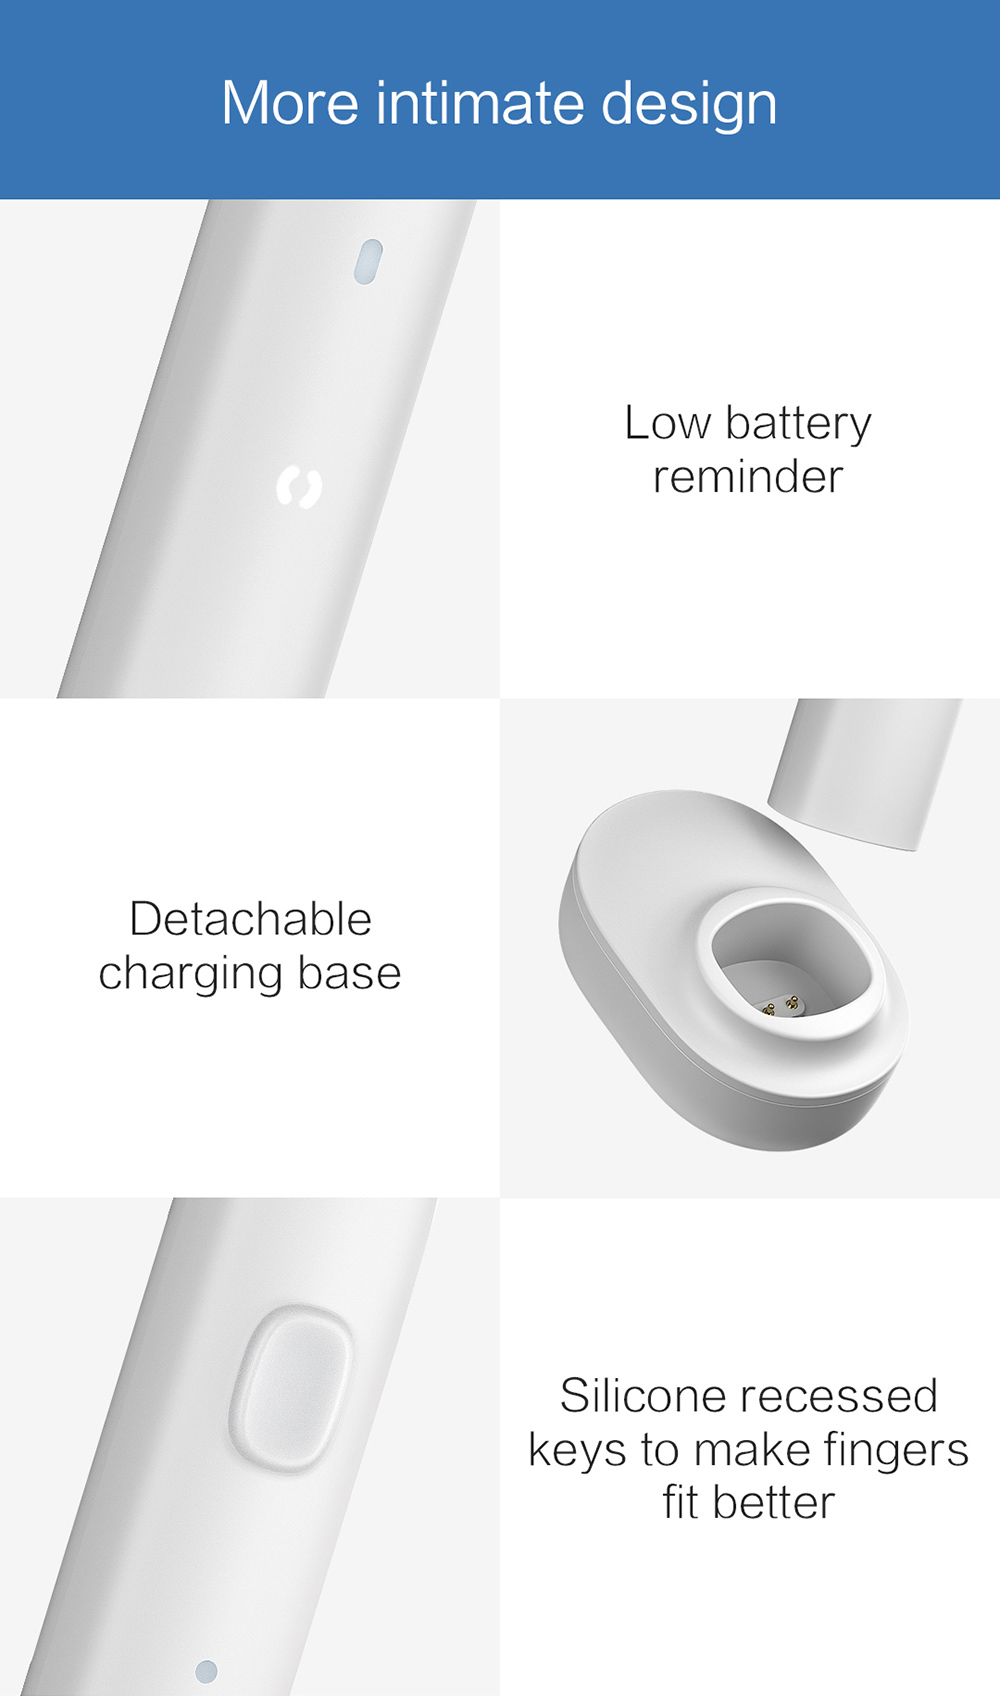 PT01 Electric Toothbrush details